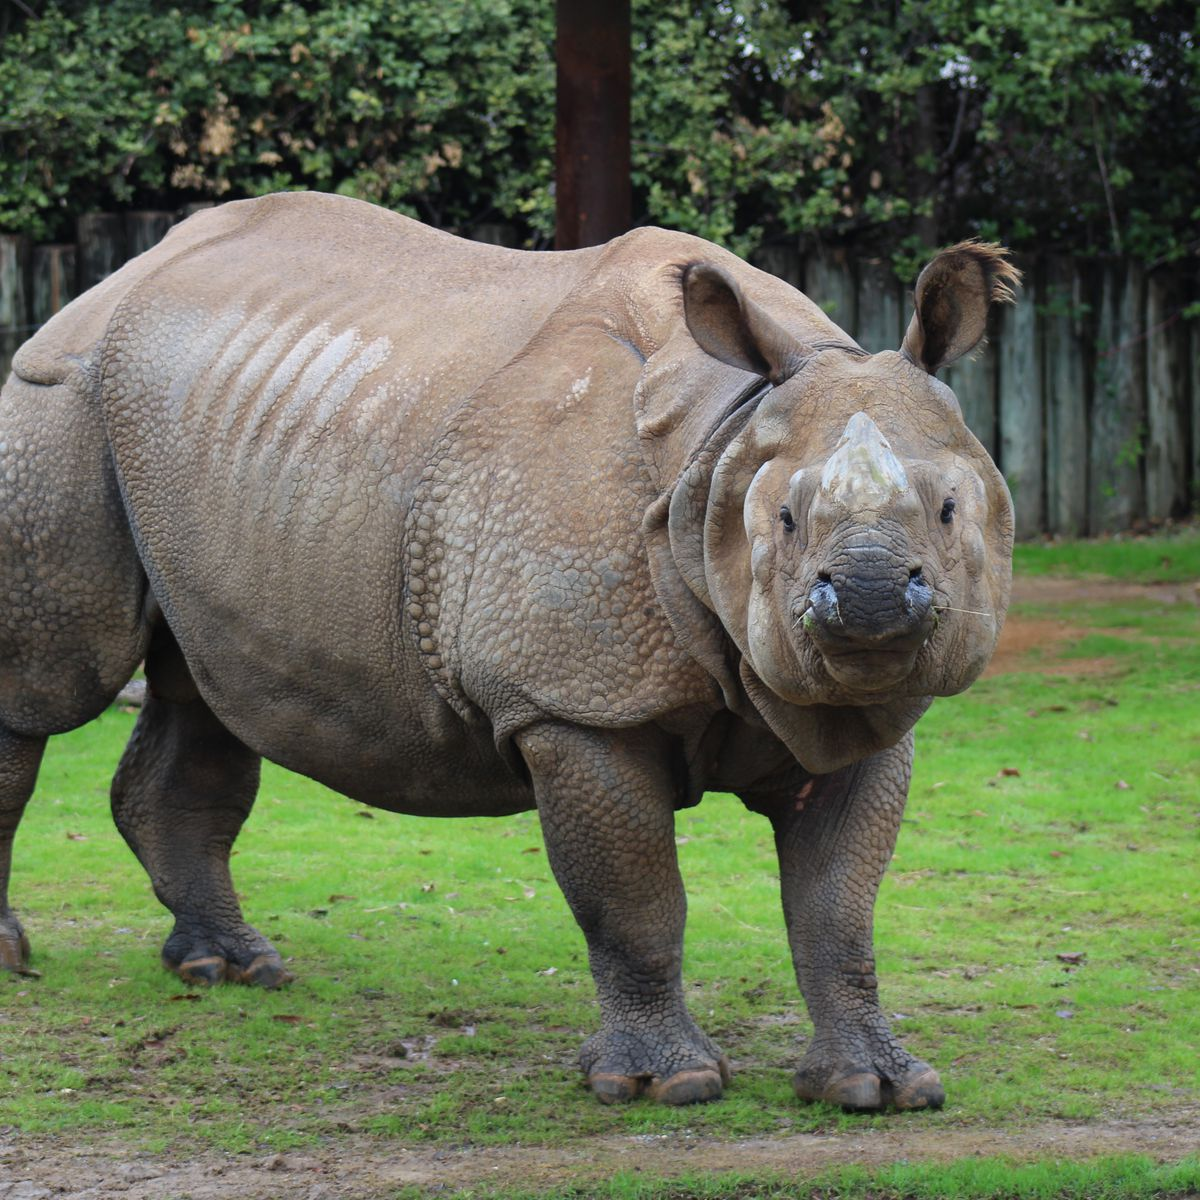 Greater one-horned rhino euthanized at Montgomery Zoo after 7 months in vet care